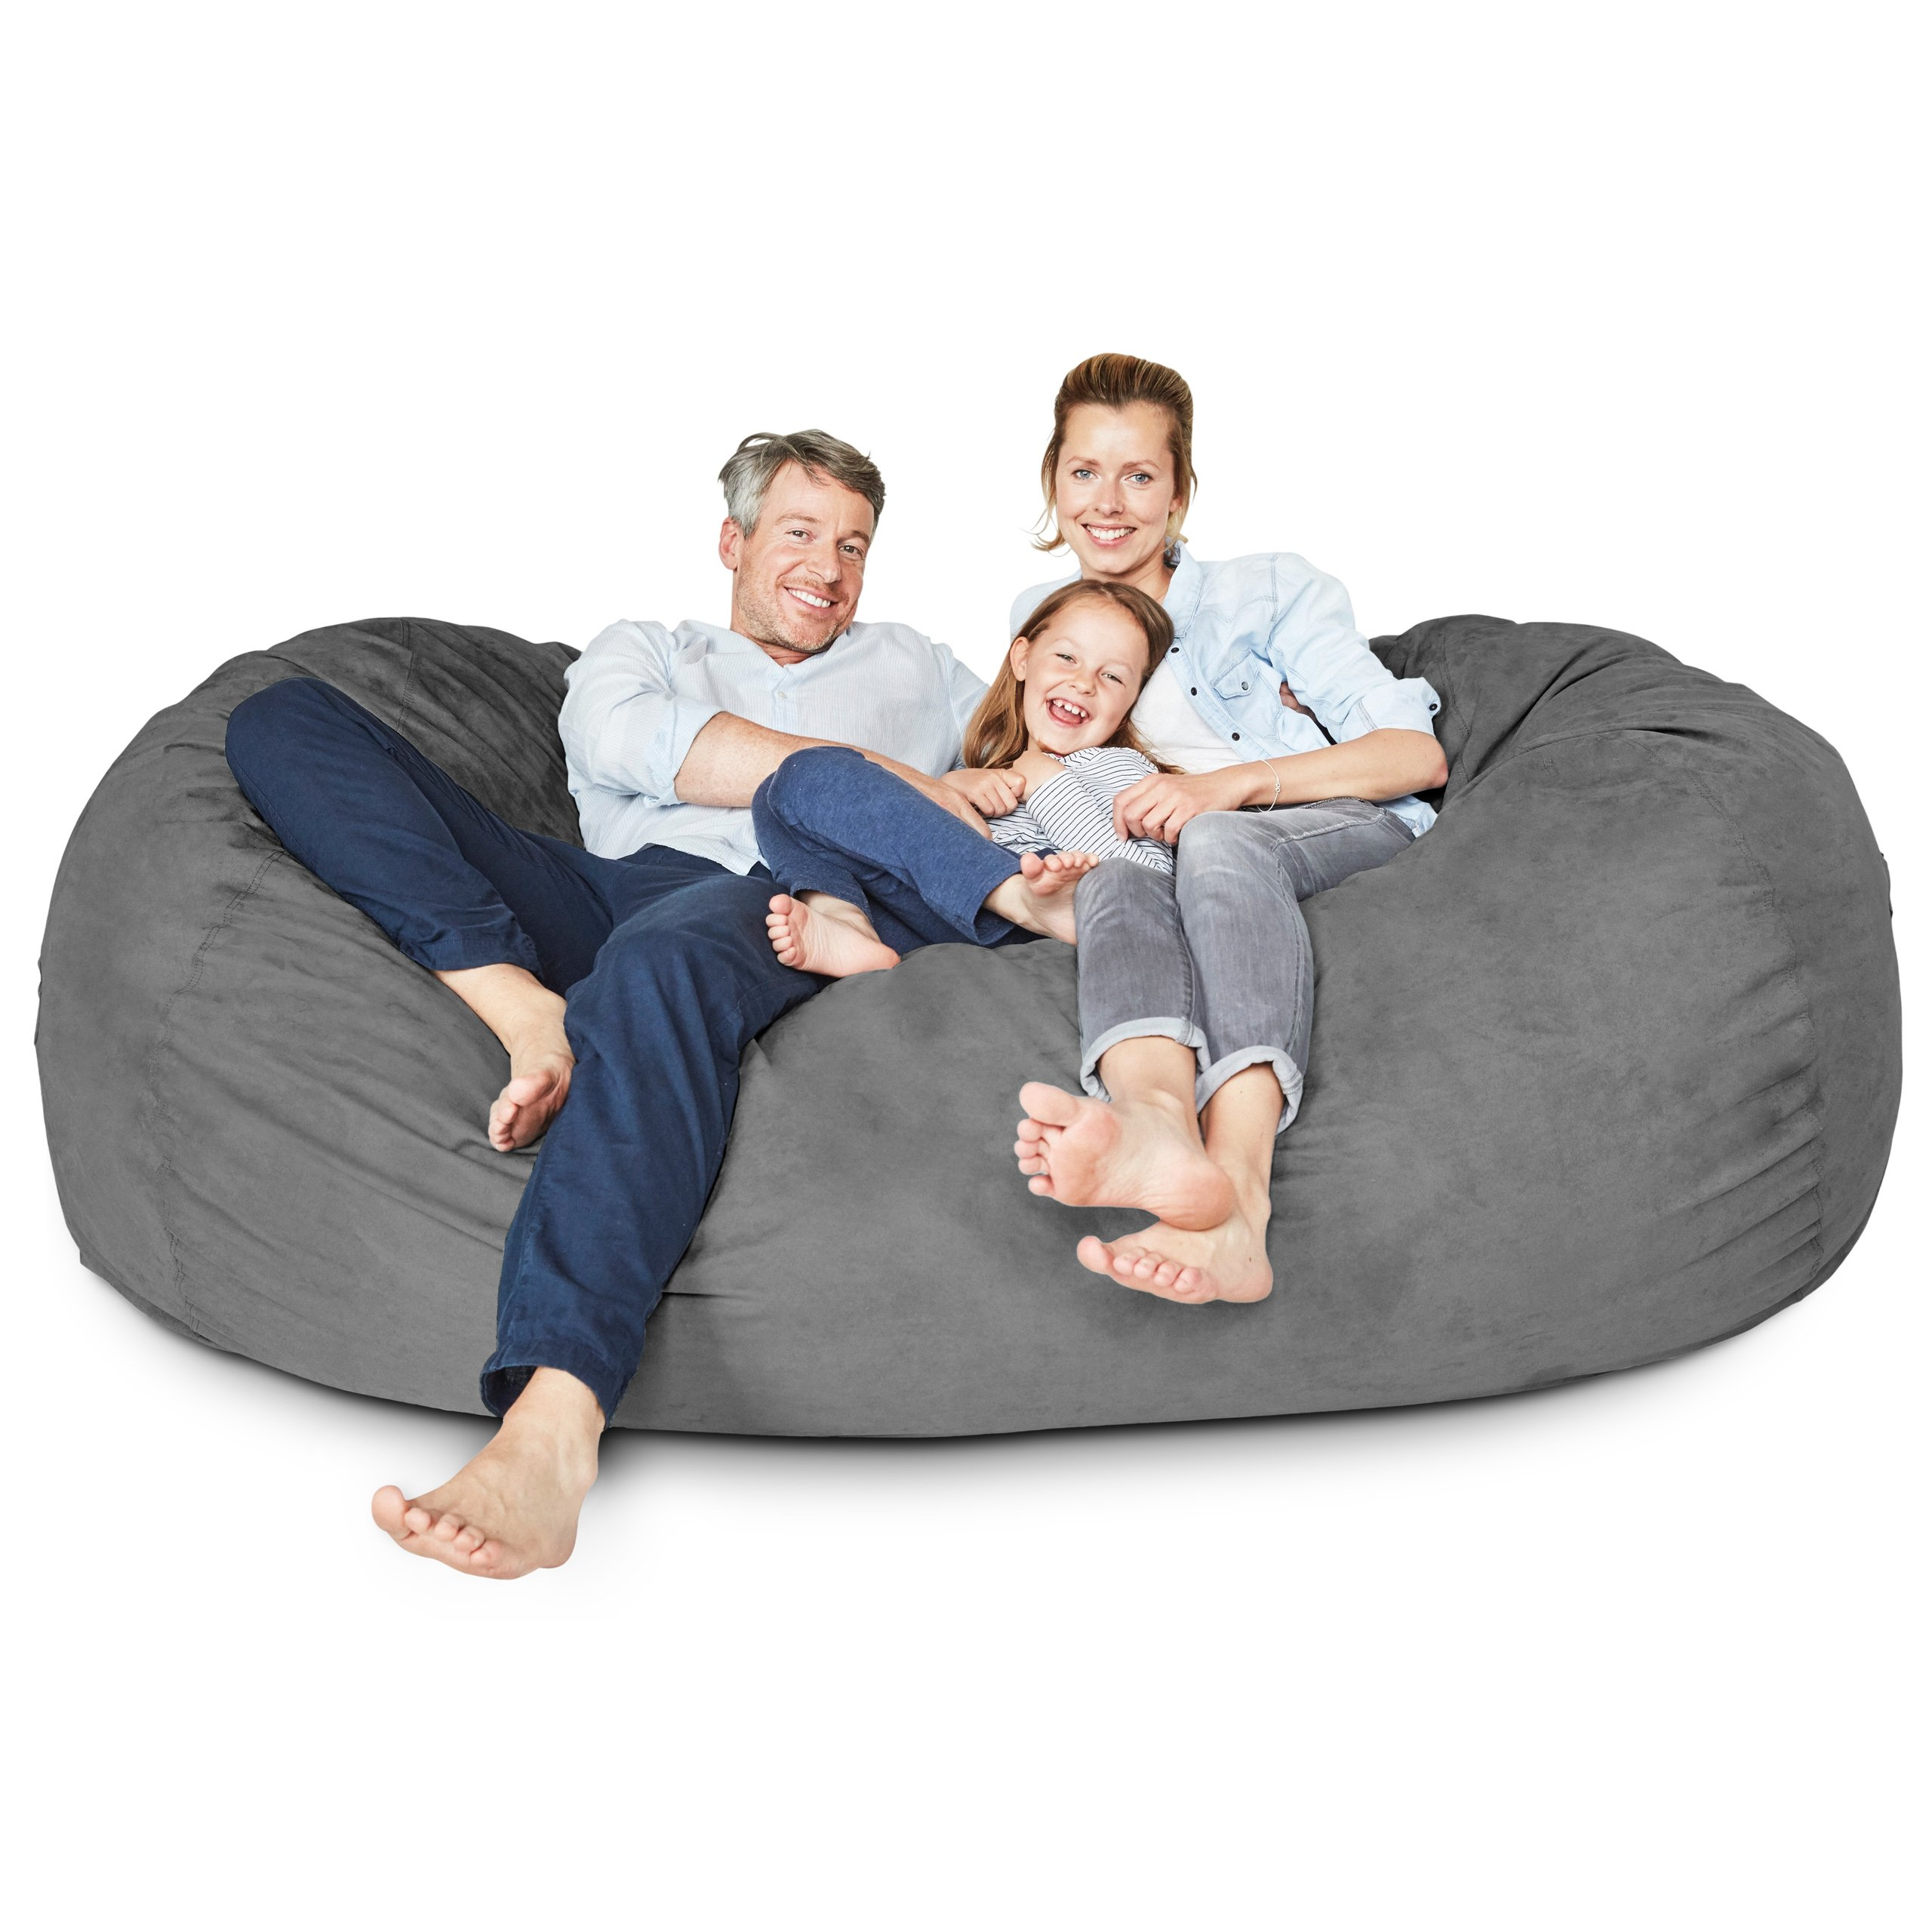 Lumaland Luxury 7-Foot Bean Bag Chair with Microsuede Cover Dark Grey, Machine Washable Big Size Sofa and Giant Lounger Furniture for Kids, Teens and Adults by Lumaland